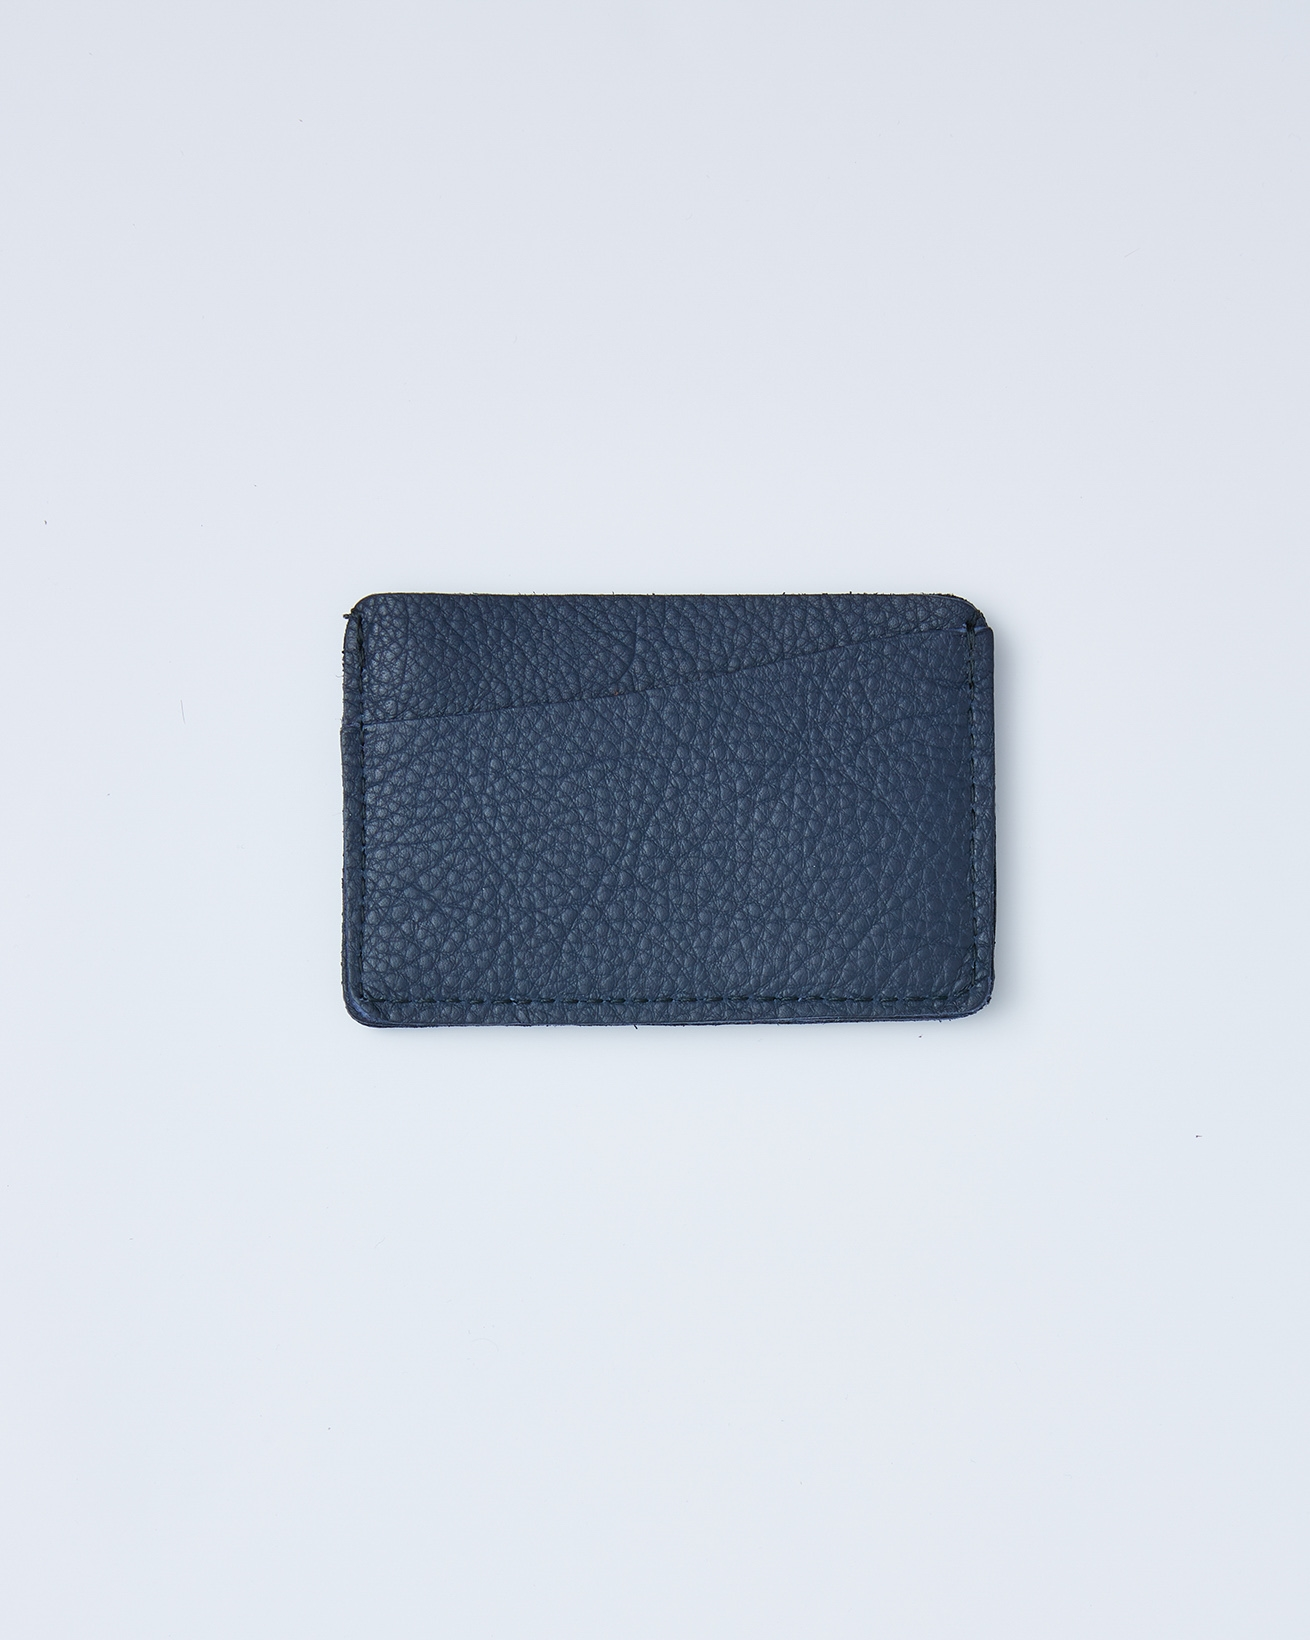 Leather Card Wallet - One/Size - Dark Navy - 2414